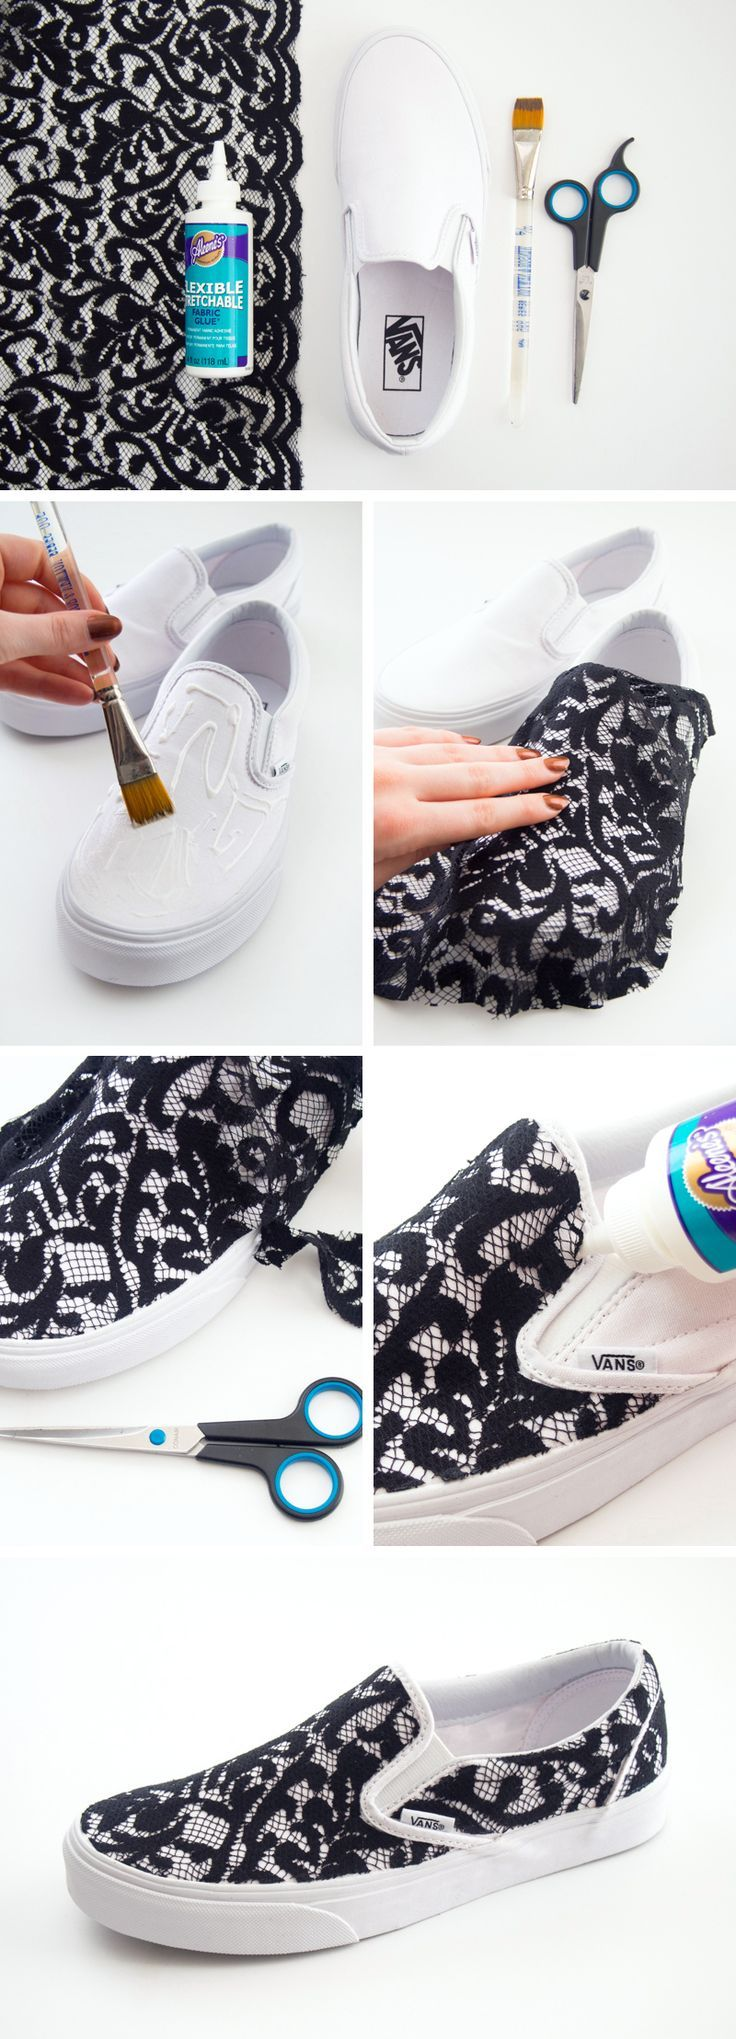 DIY Lace Shoe Makeover  easy crafts  diy clothes easy diy fun  diy shoes   Look like awesome easy results - timely style in 2014 - beach shoes, free shoes, summer shoes for women *sponsored https://www.pinterest.com/shoes_shoe/ https://www.pinterest.com/explore/shoes/ https://www.pinterest.com/shoes_shoe/spring-shoes/ http://www.dillards.com/c/shoes